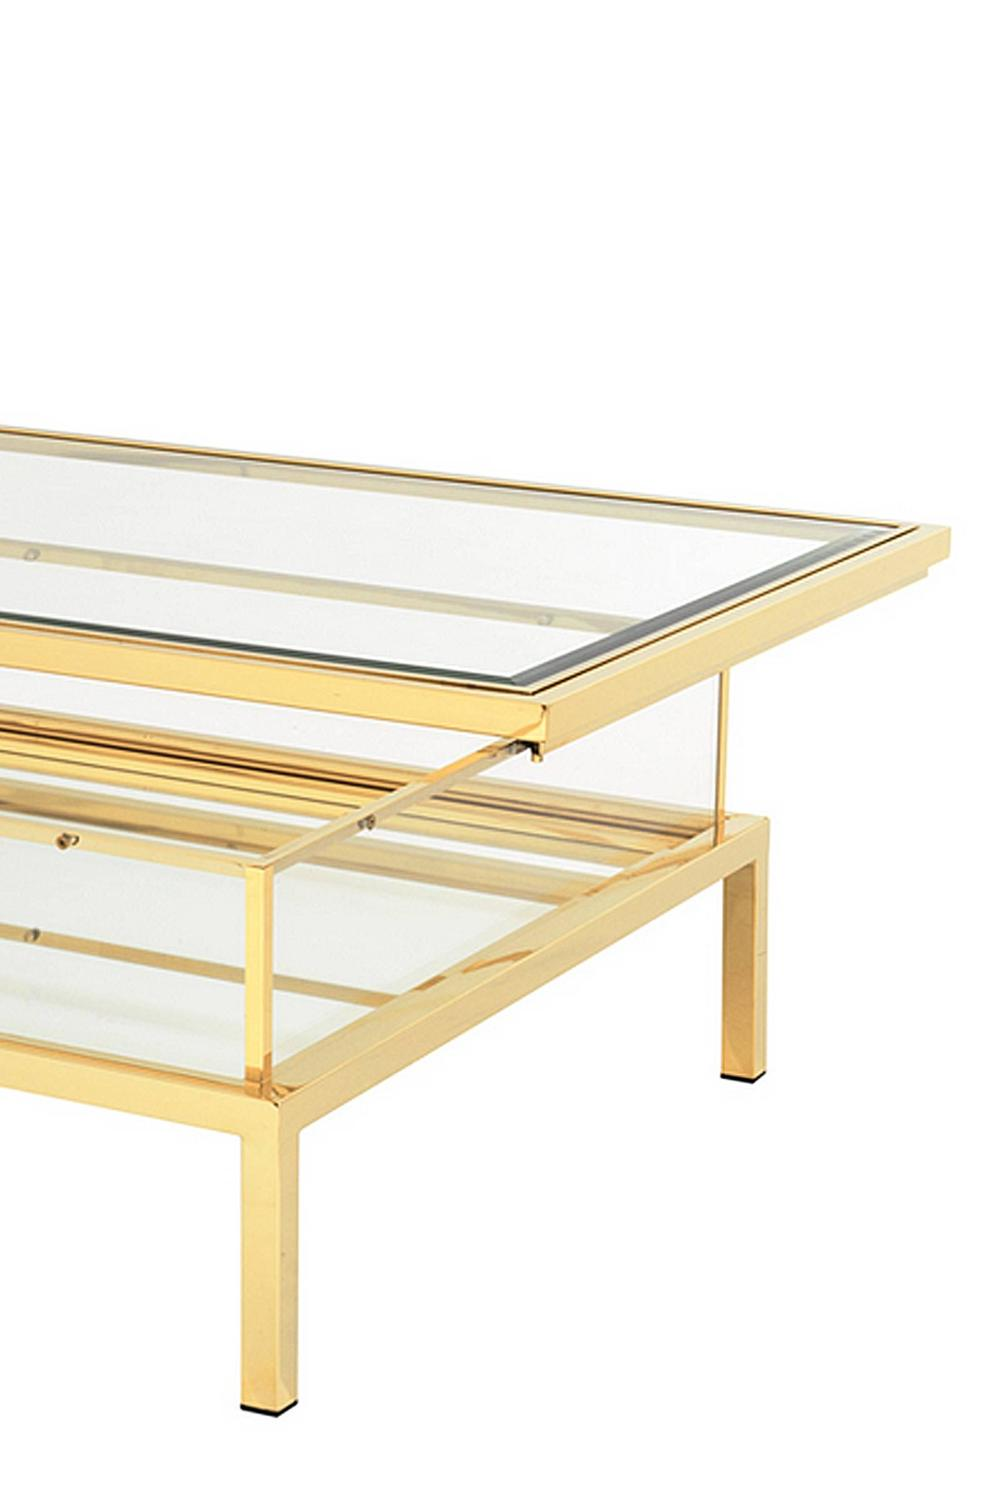 Couchtisch Glas Verschiebbar Slide Coffee Table In Gold Finish With Clear Glass And